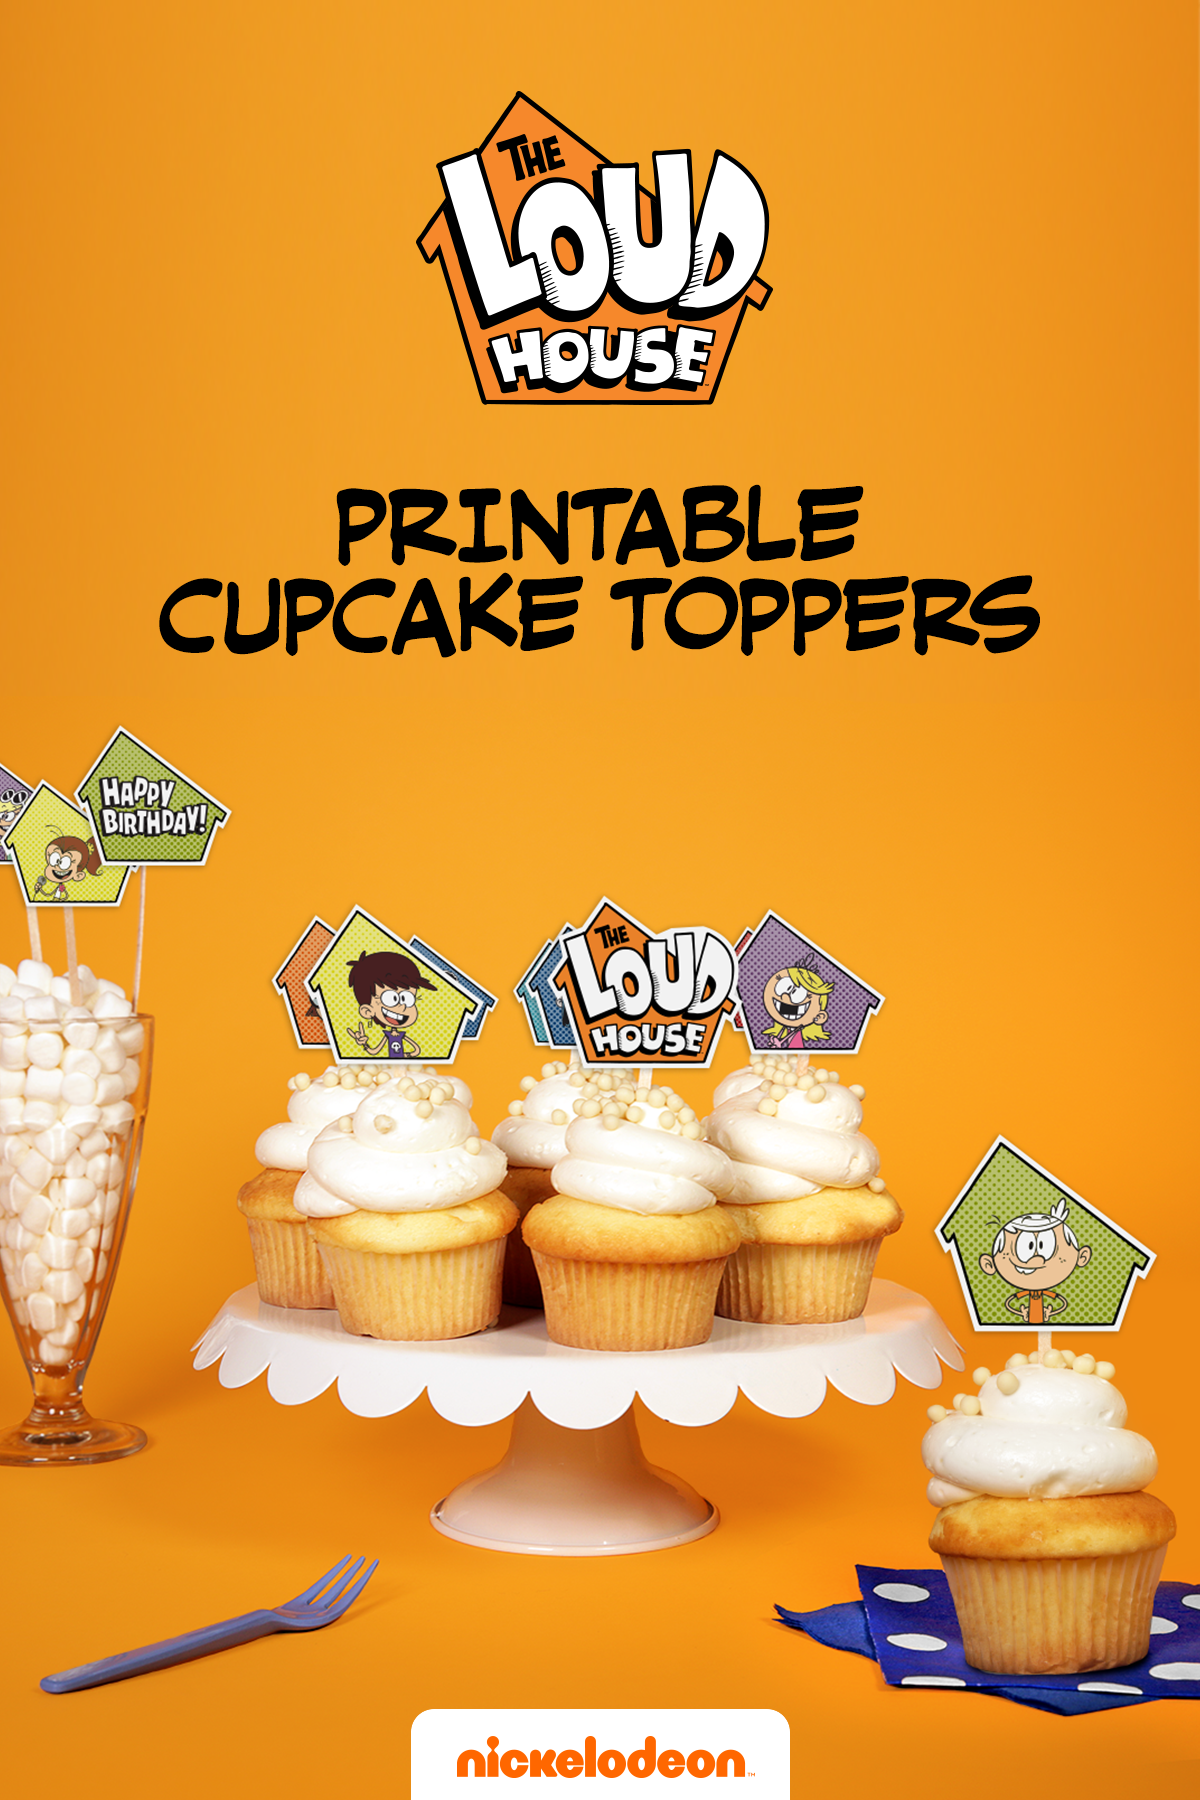 The Loud House Cupcake Toppers